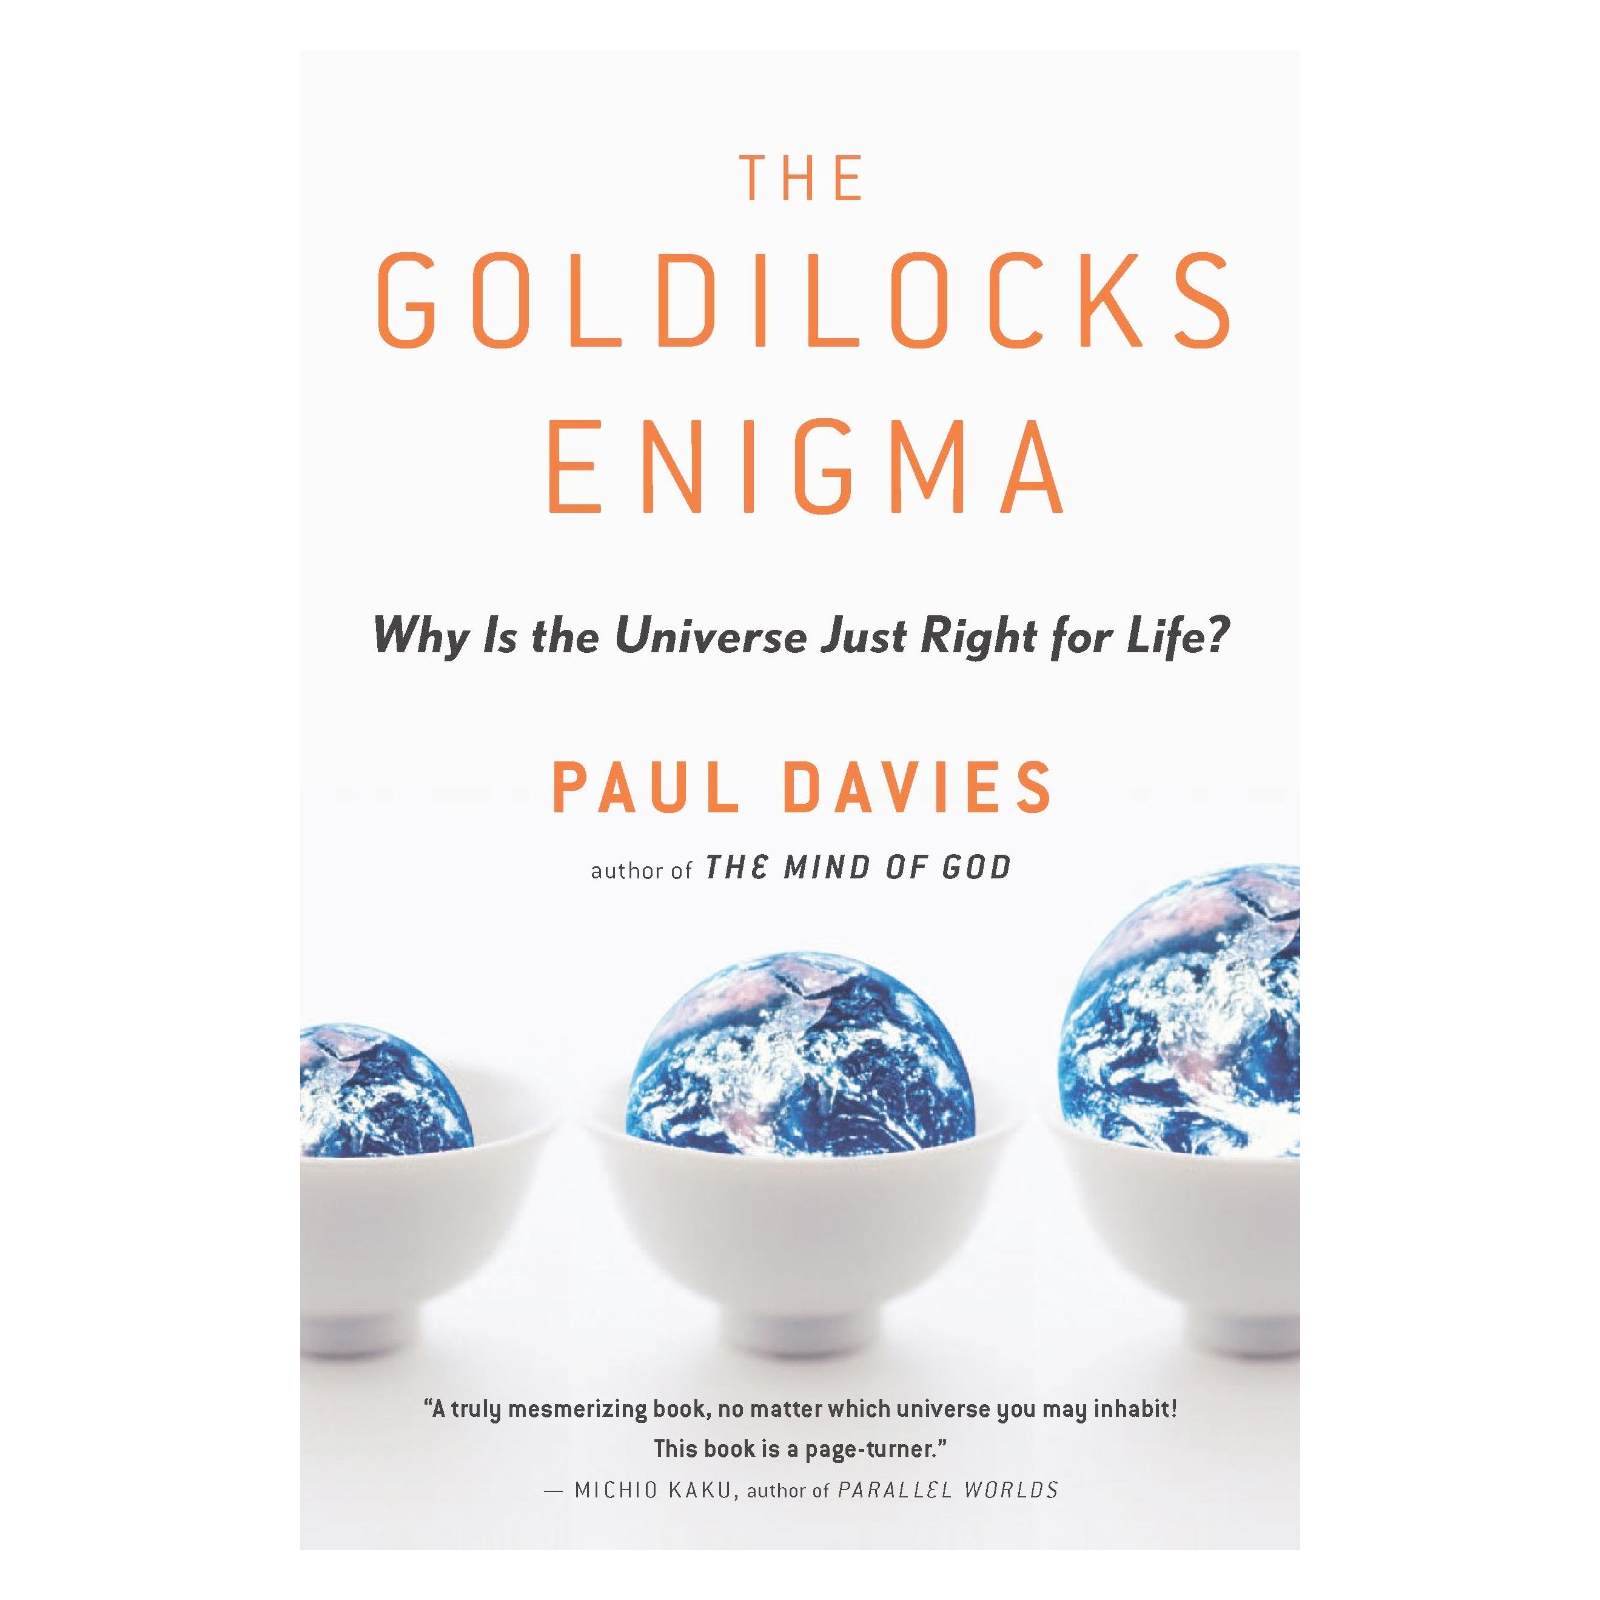 The Goldilocks Enigma Image